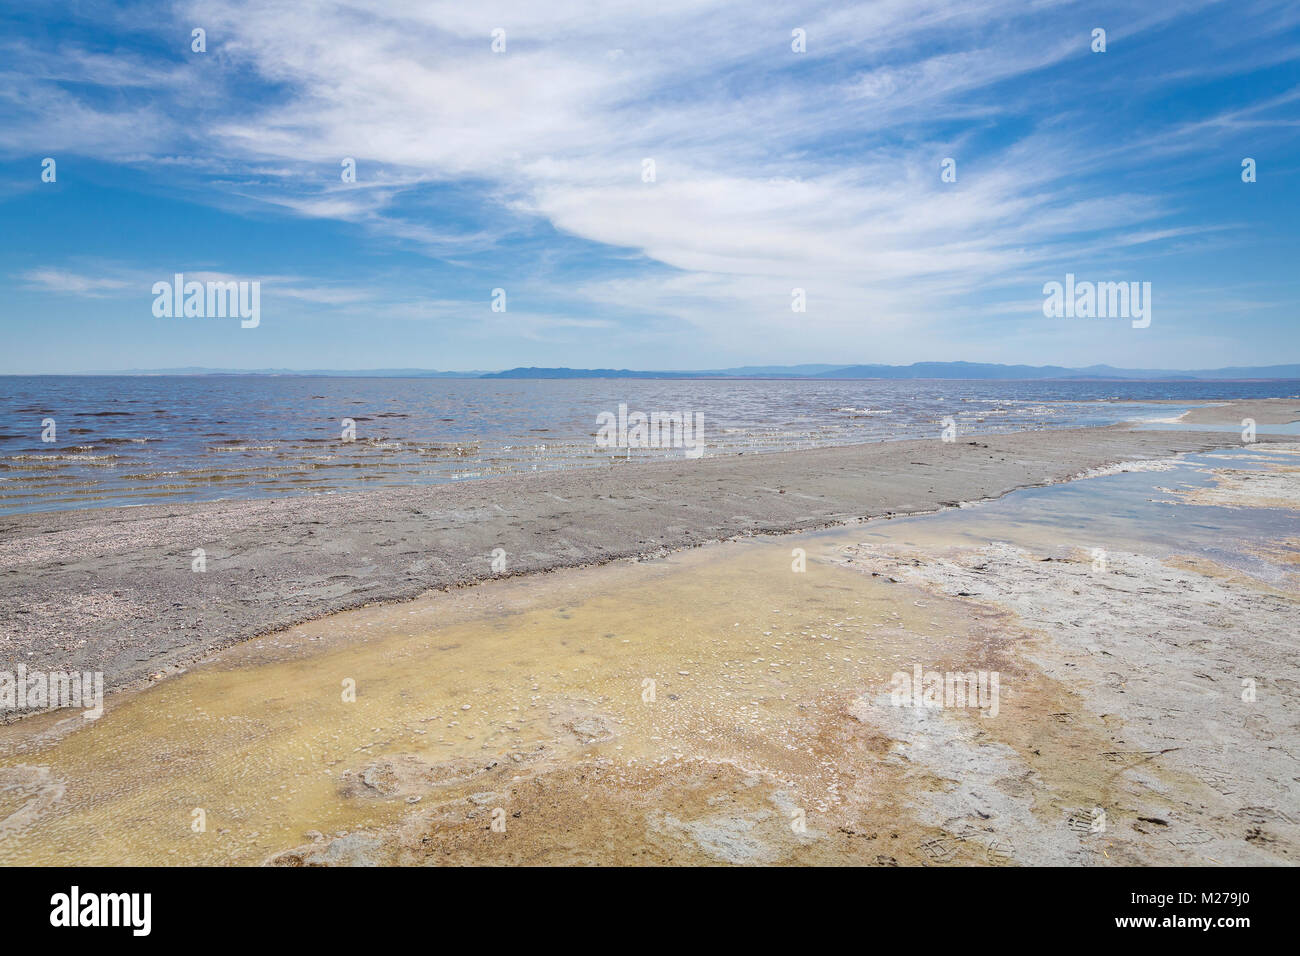 Dried Seabed at The Salton Sea, Bombay Beach, California - Stock Image